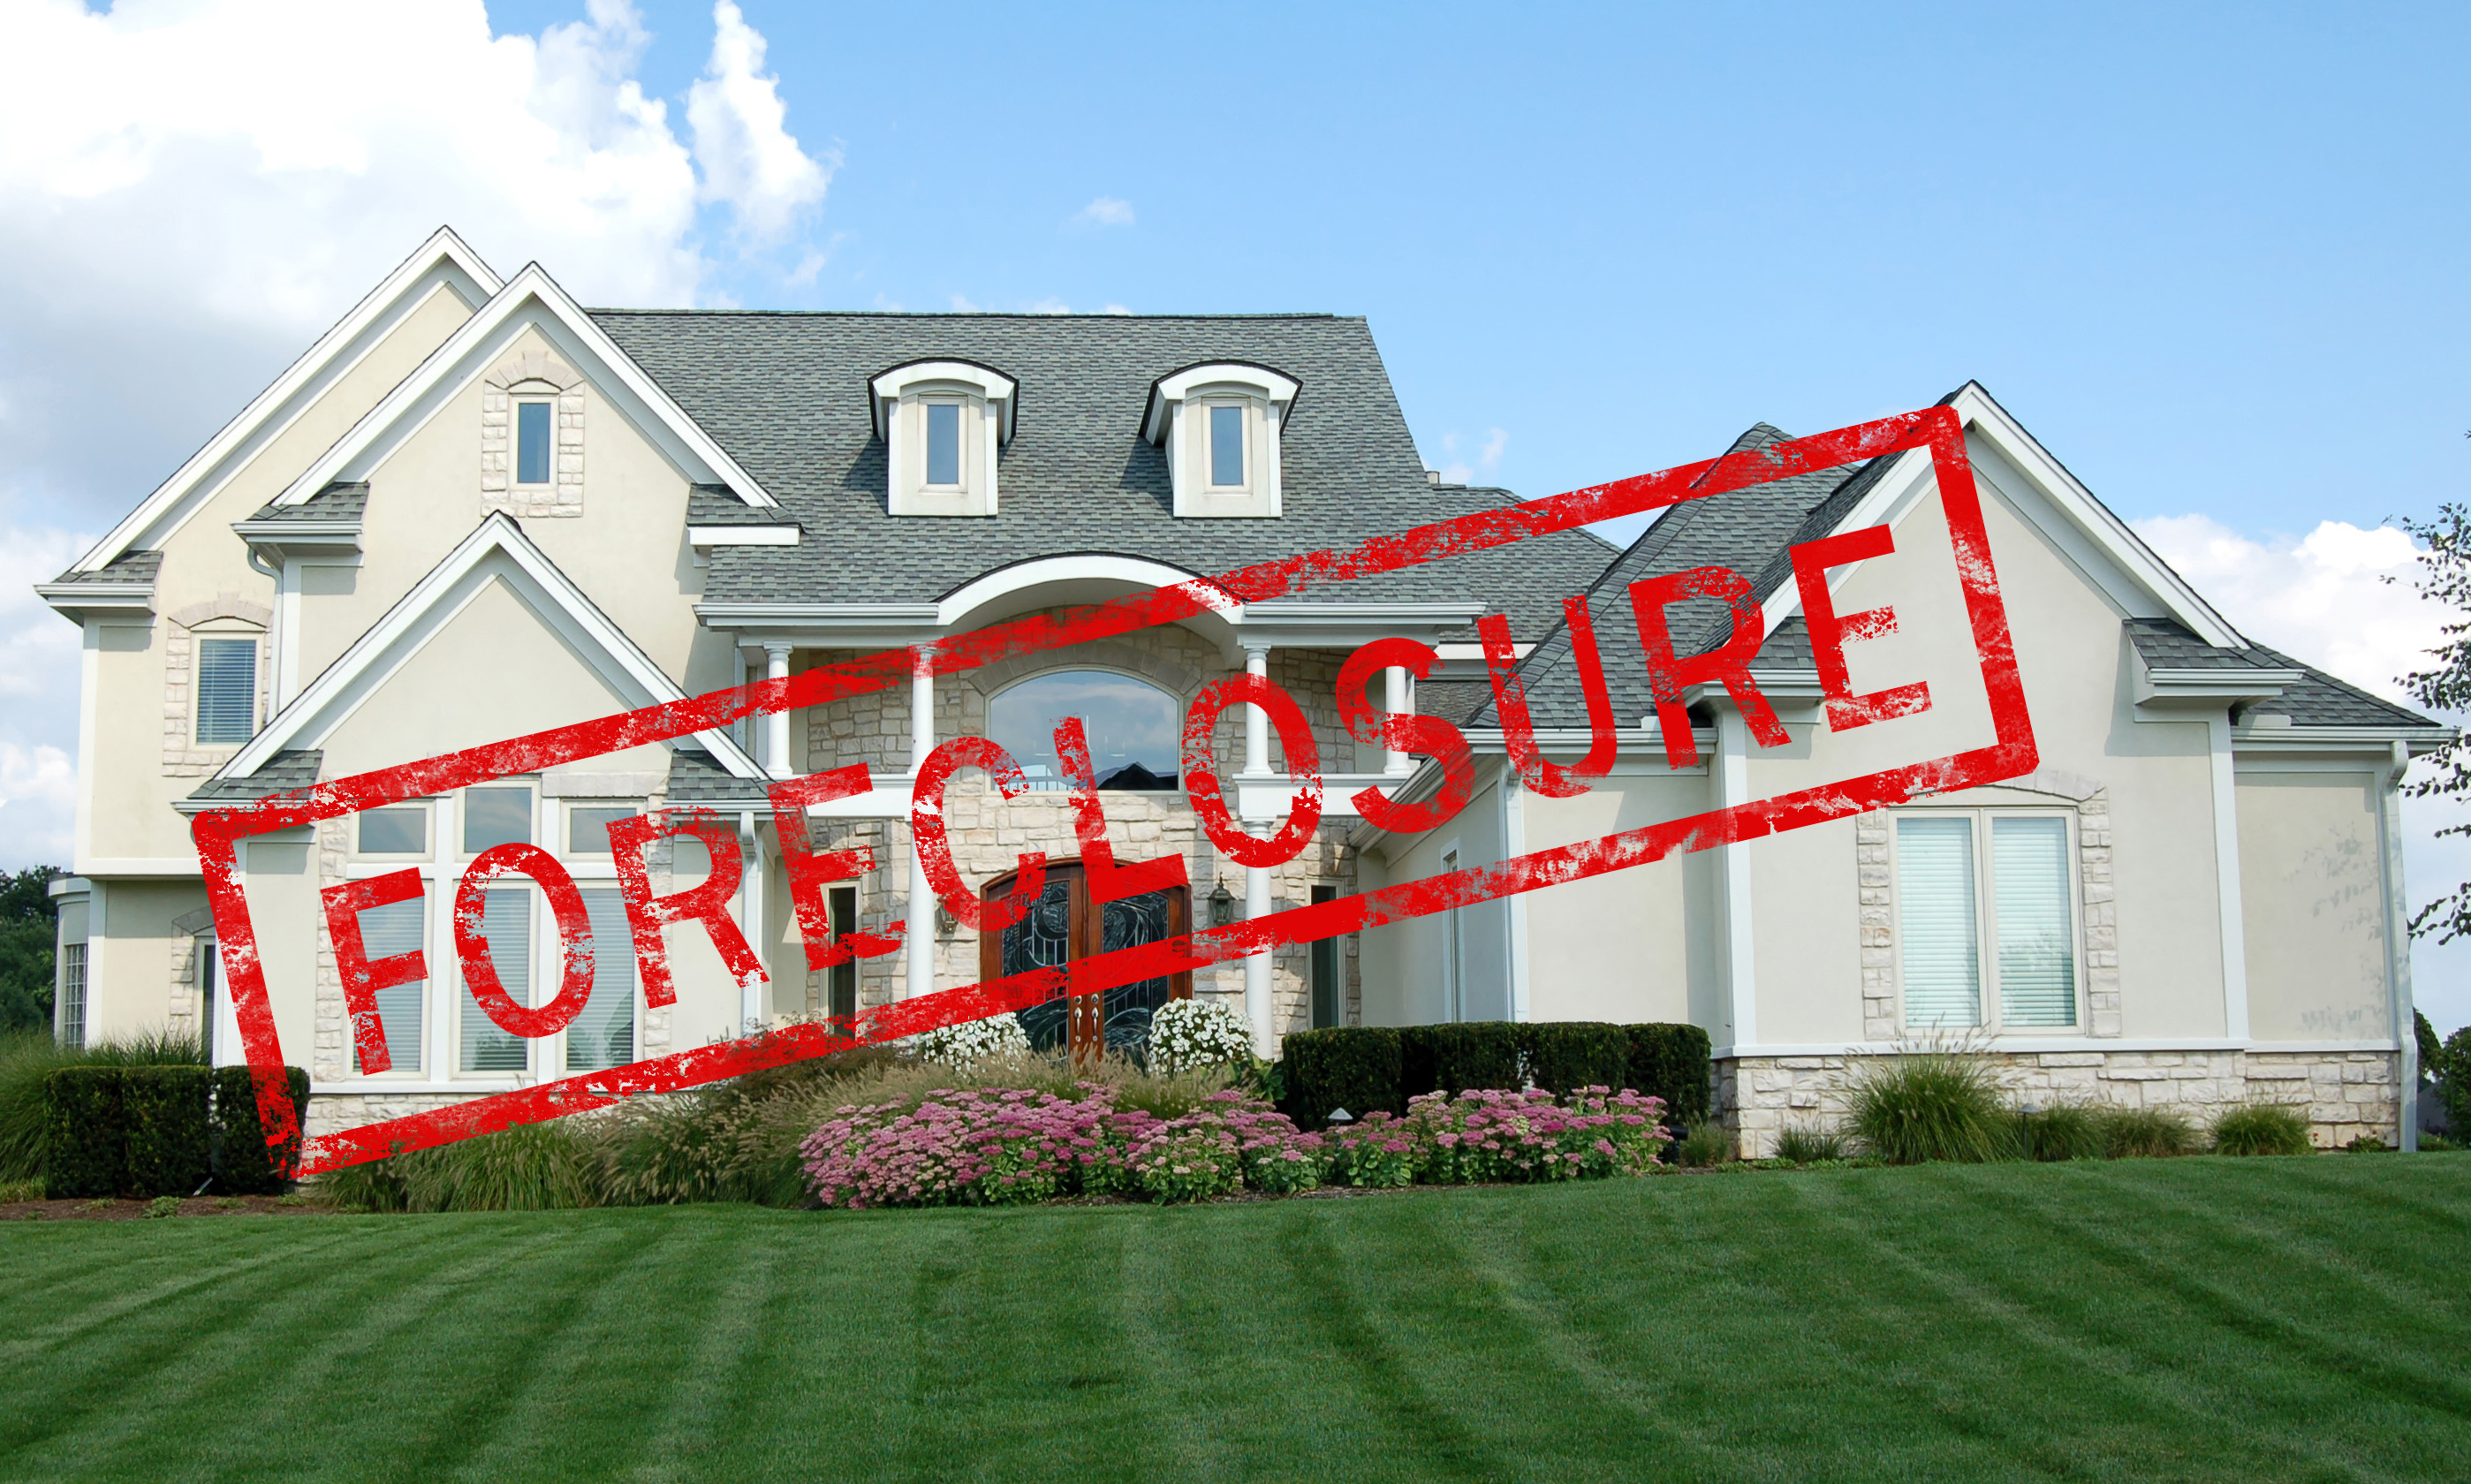 Call Gold Coast Appraisal Group LLC when you need appraisals for Bergen foreclosures